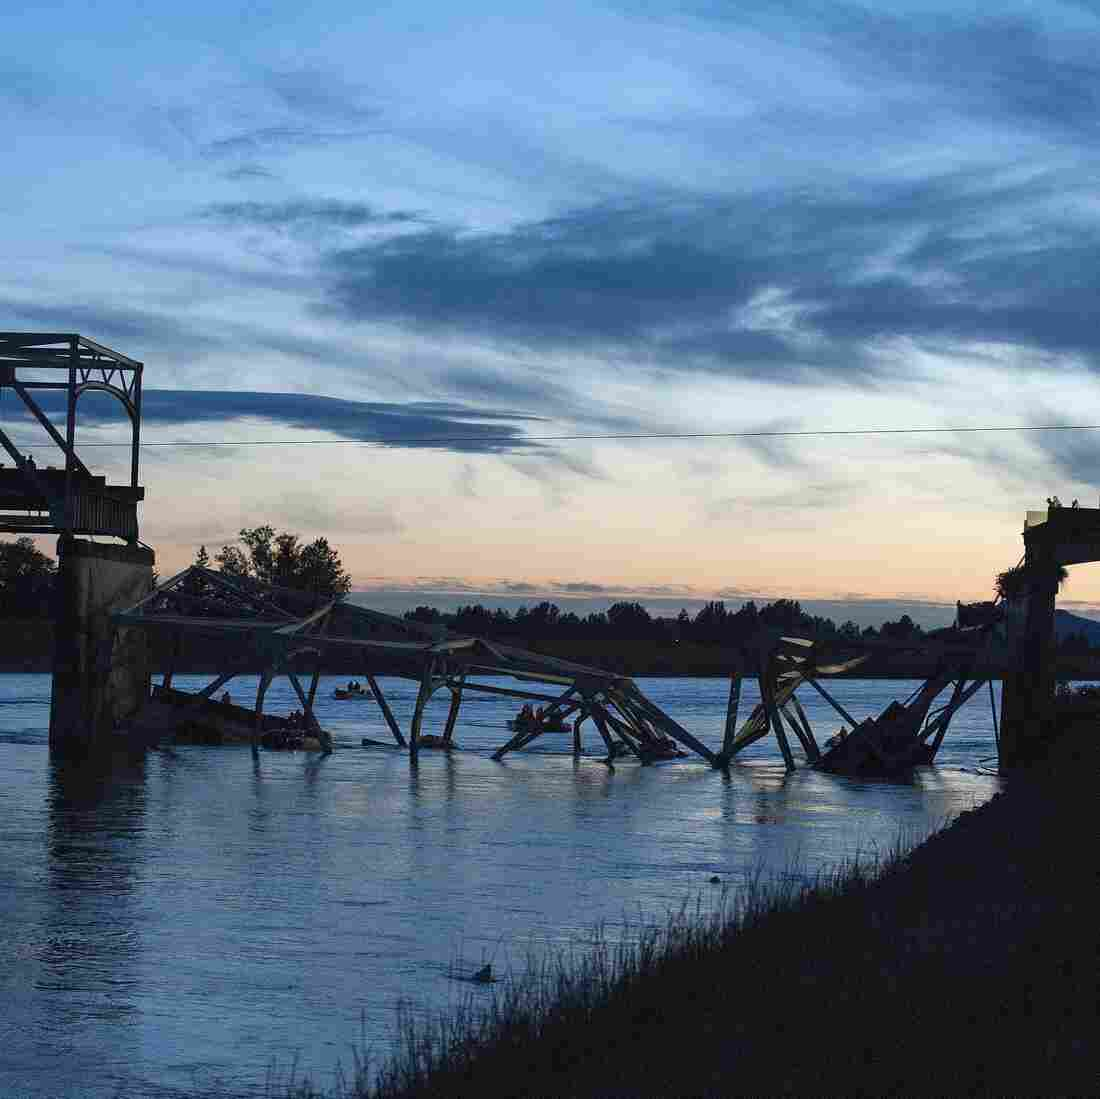 'White Flash And Cold Water' After Bridge Collapse In Wash.